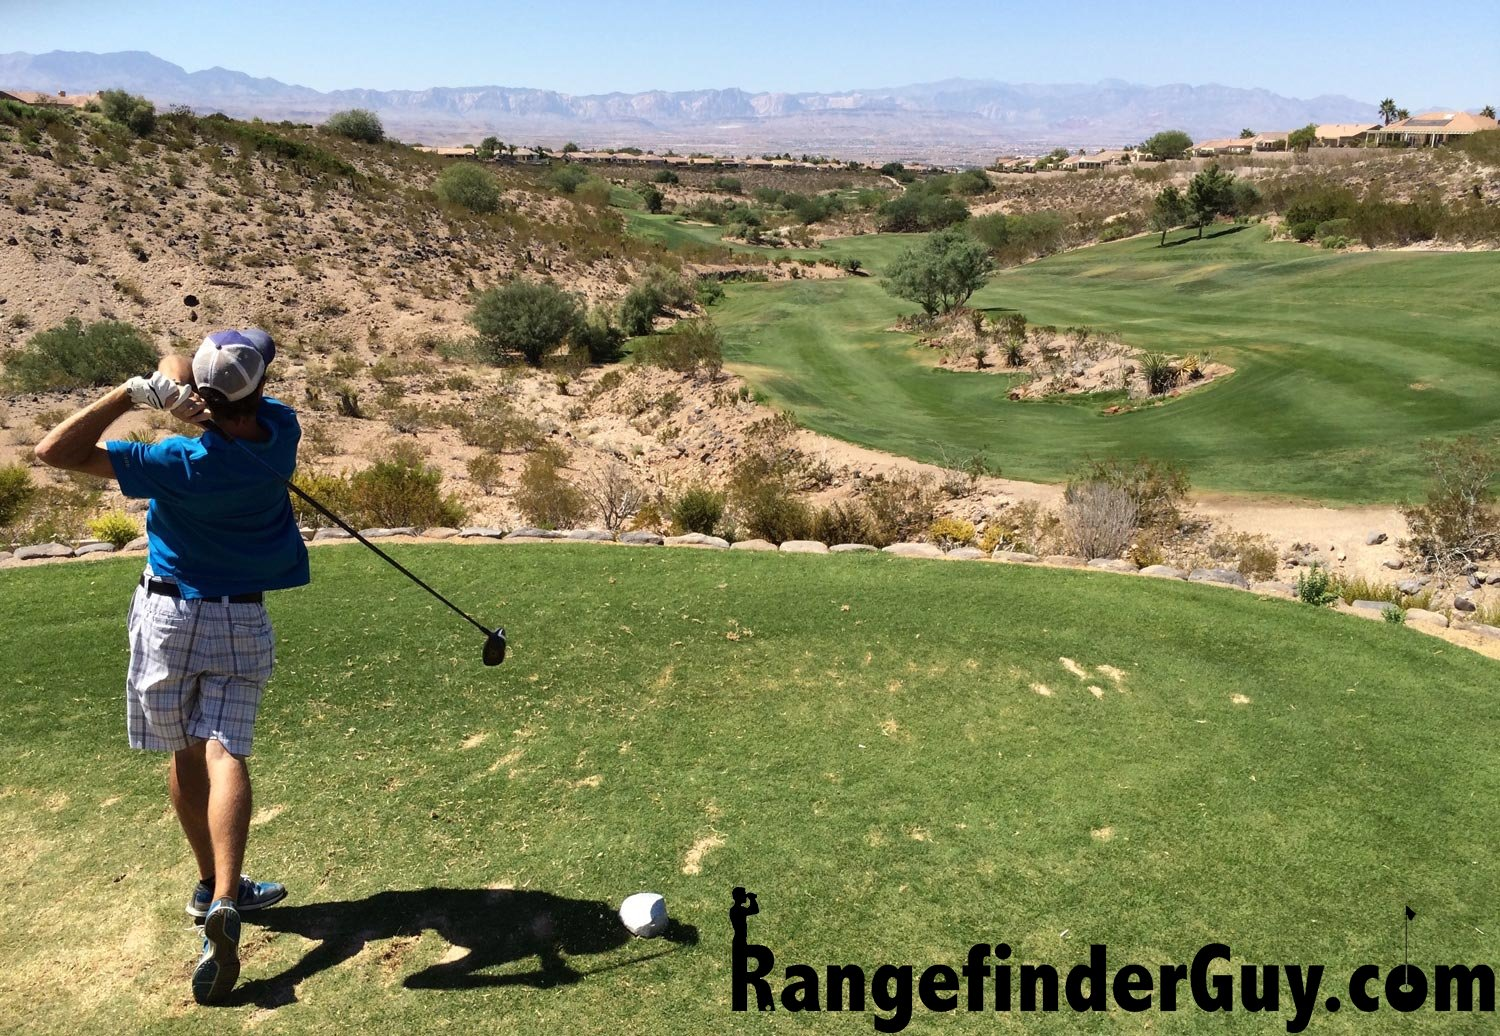 The Golf Rangefinder Guy teeing off in Las Vegas